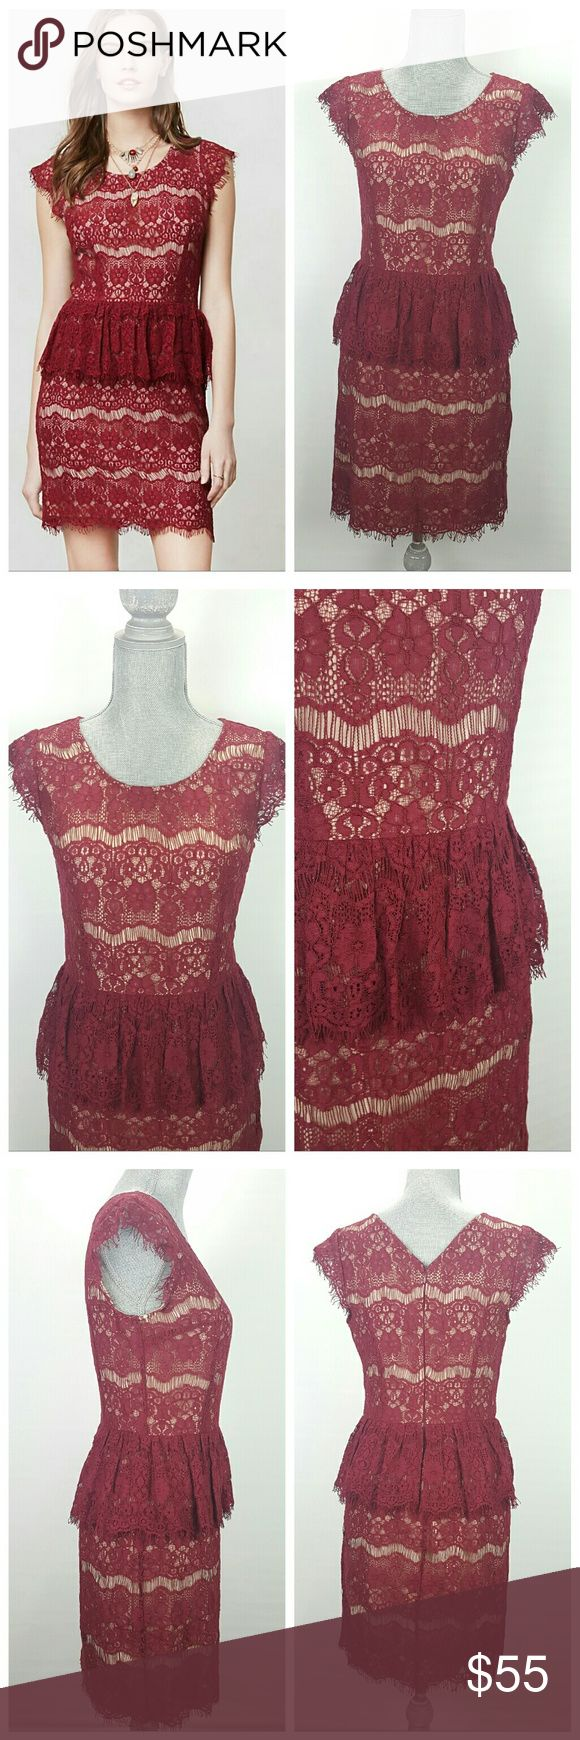 Anthropologie Maeve Elsa Red Peplum Dress-Sz Small Anthropologie- Maeve Elsa Red Peplum Dress   Red lace over nude lining with scoop neck and fringe on cap sleeves and hem. Excellent condition. Anthropologie Dresses Midi